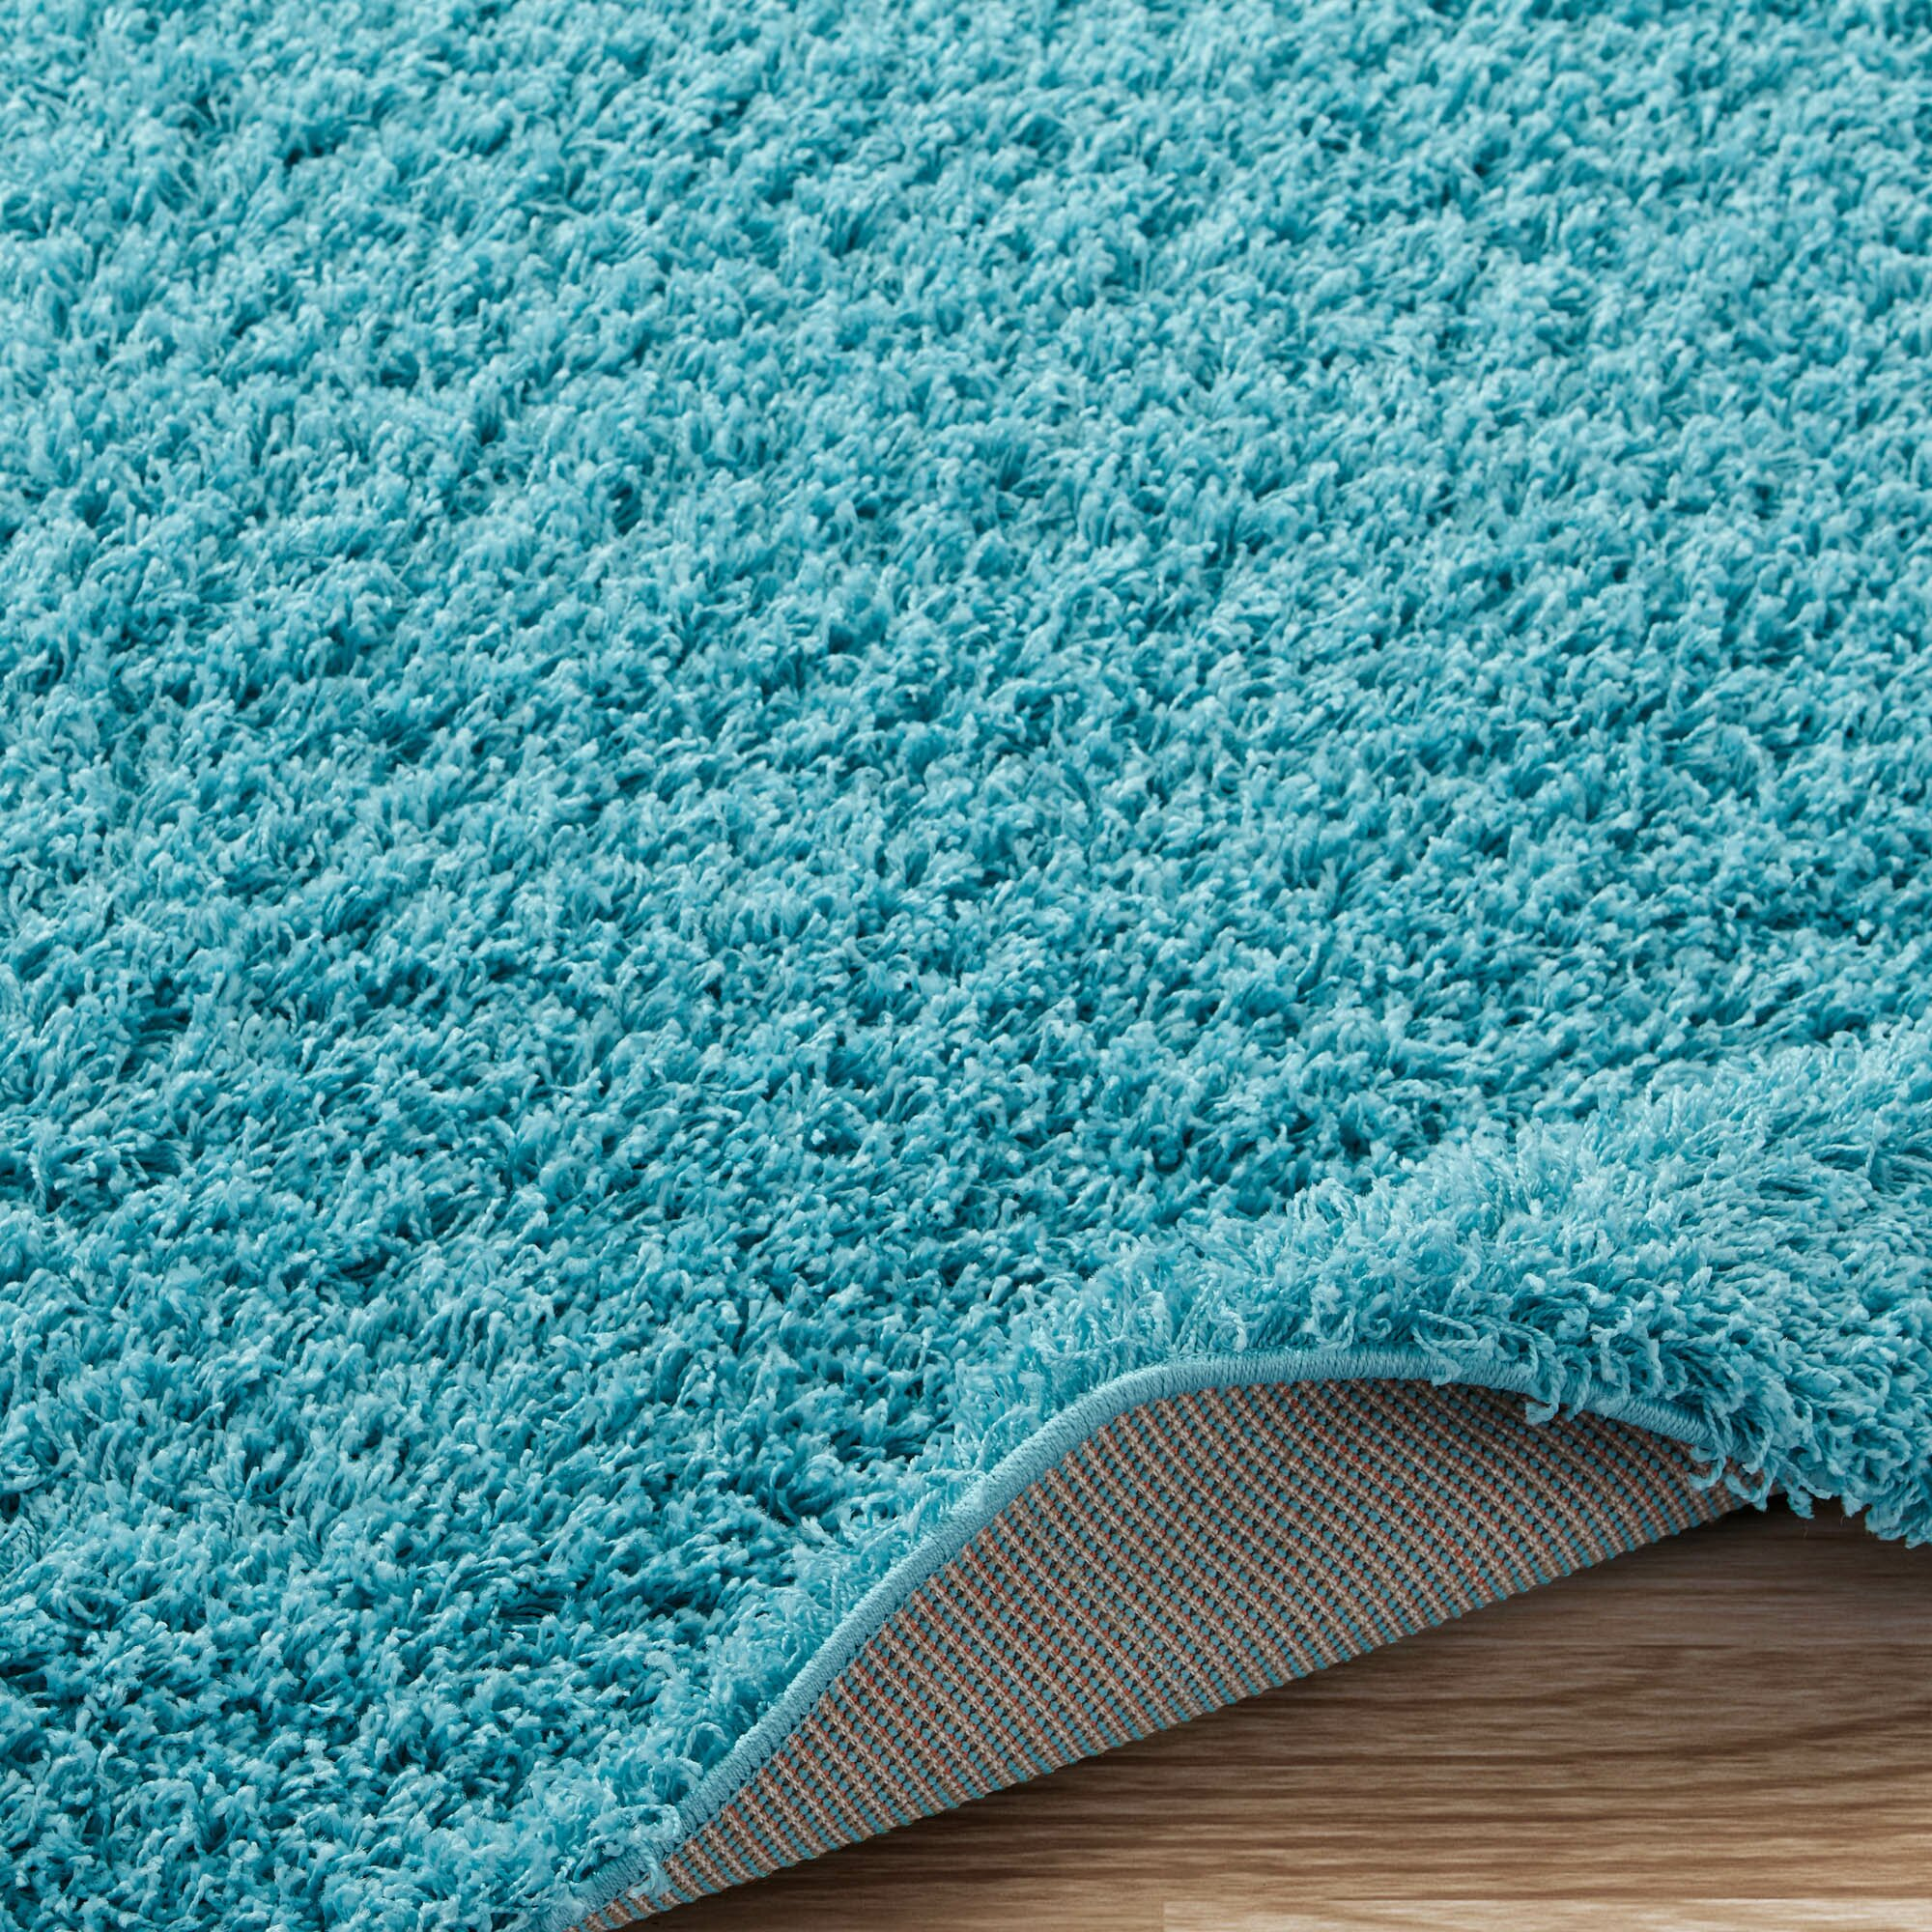 Turquoise Blue Area Rugs Home Decor